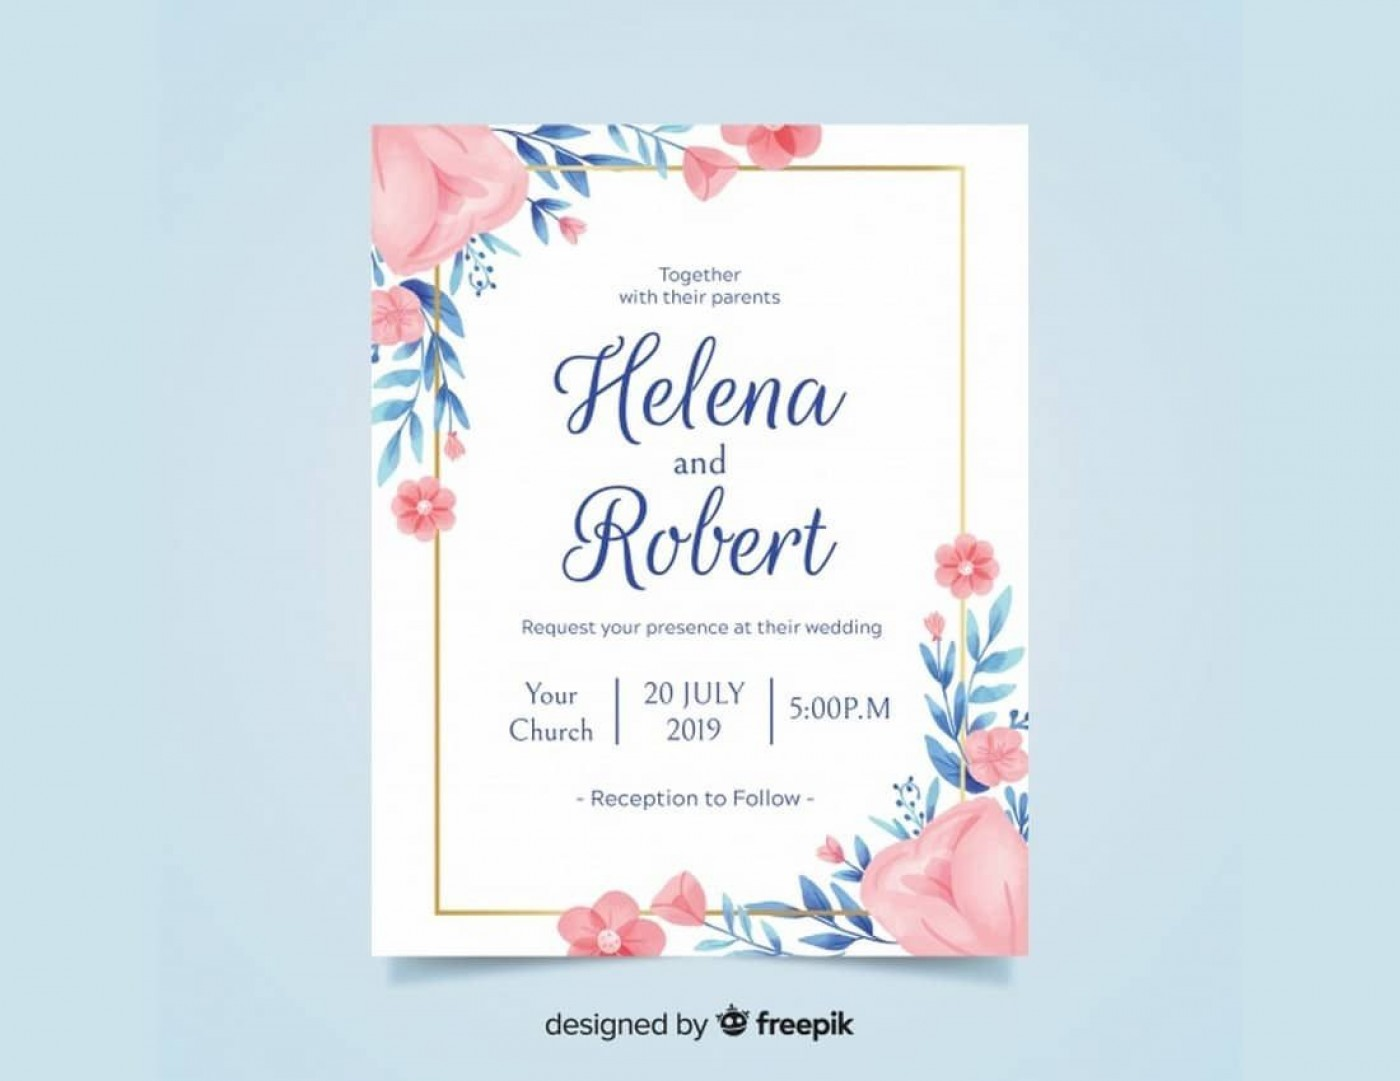 007 Amazing Free Busines Invitation Template For Word Image 1400